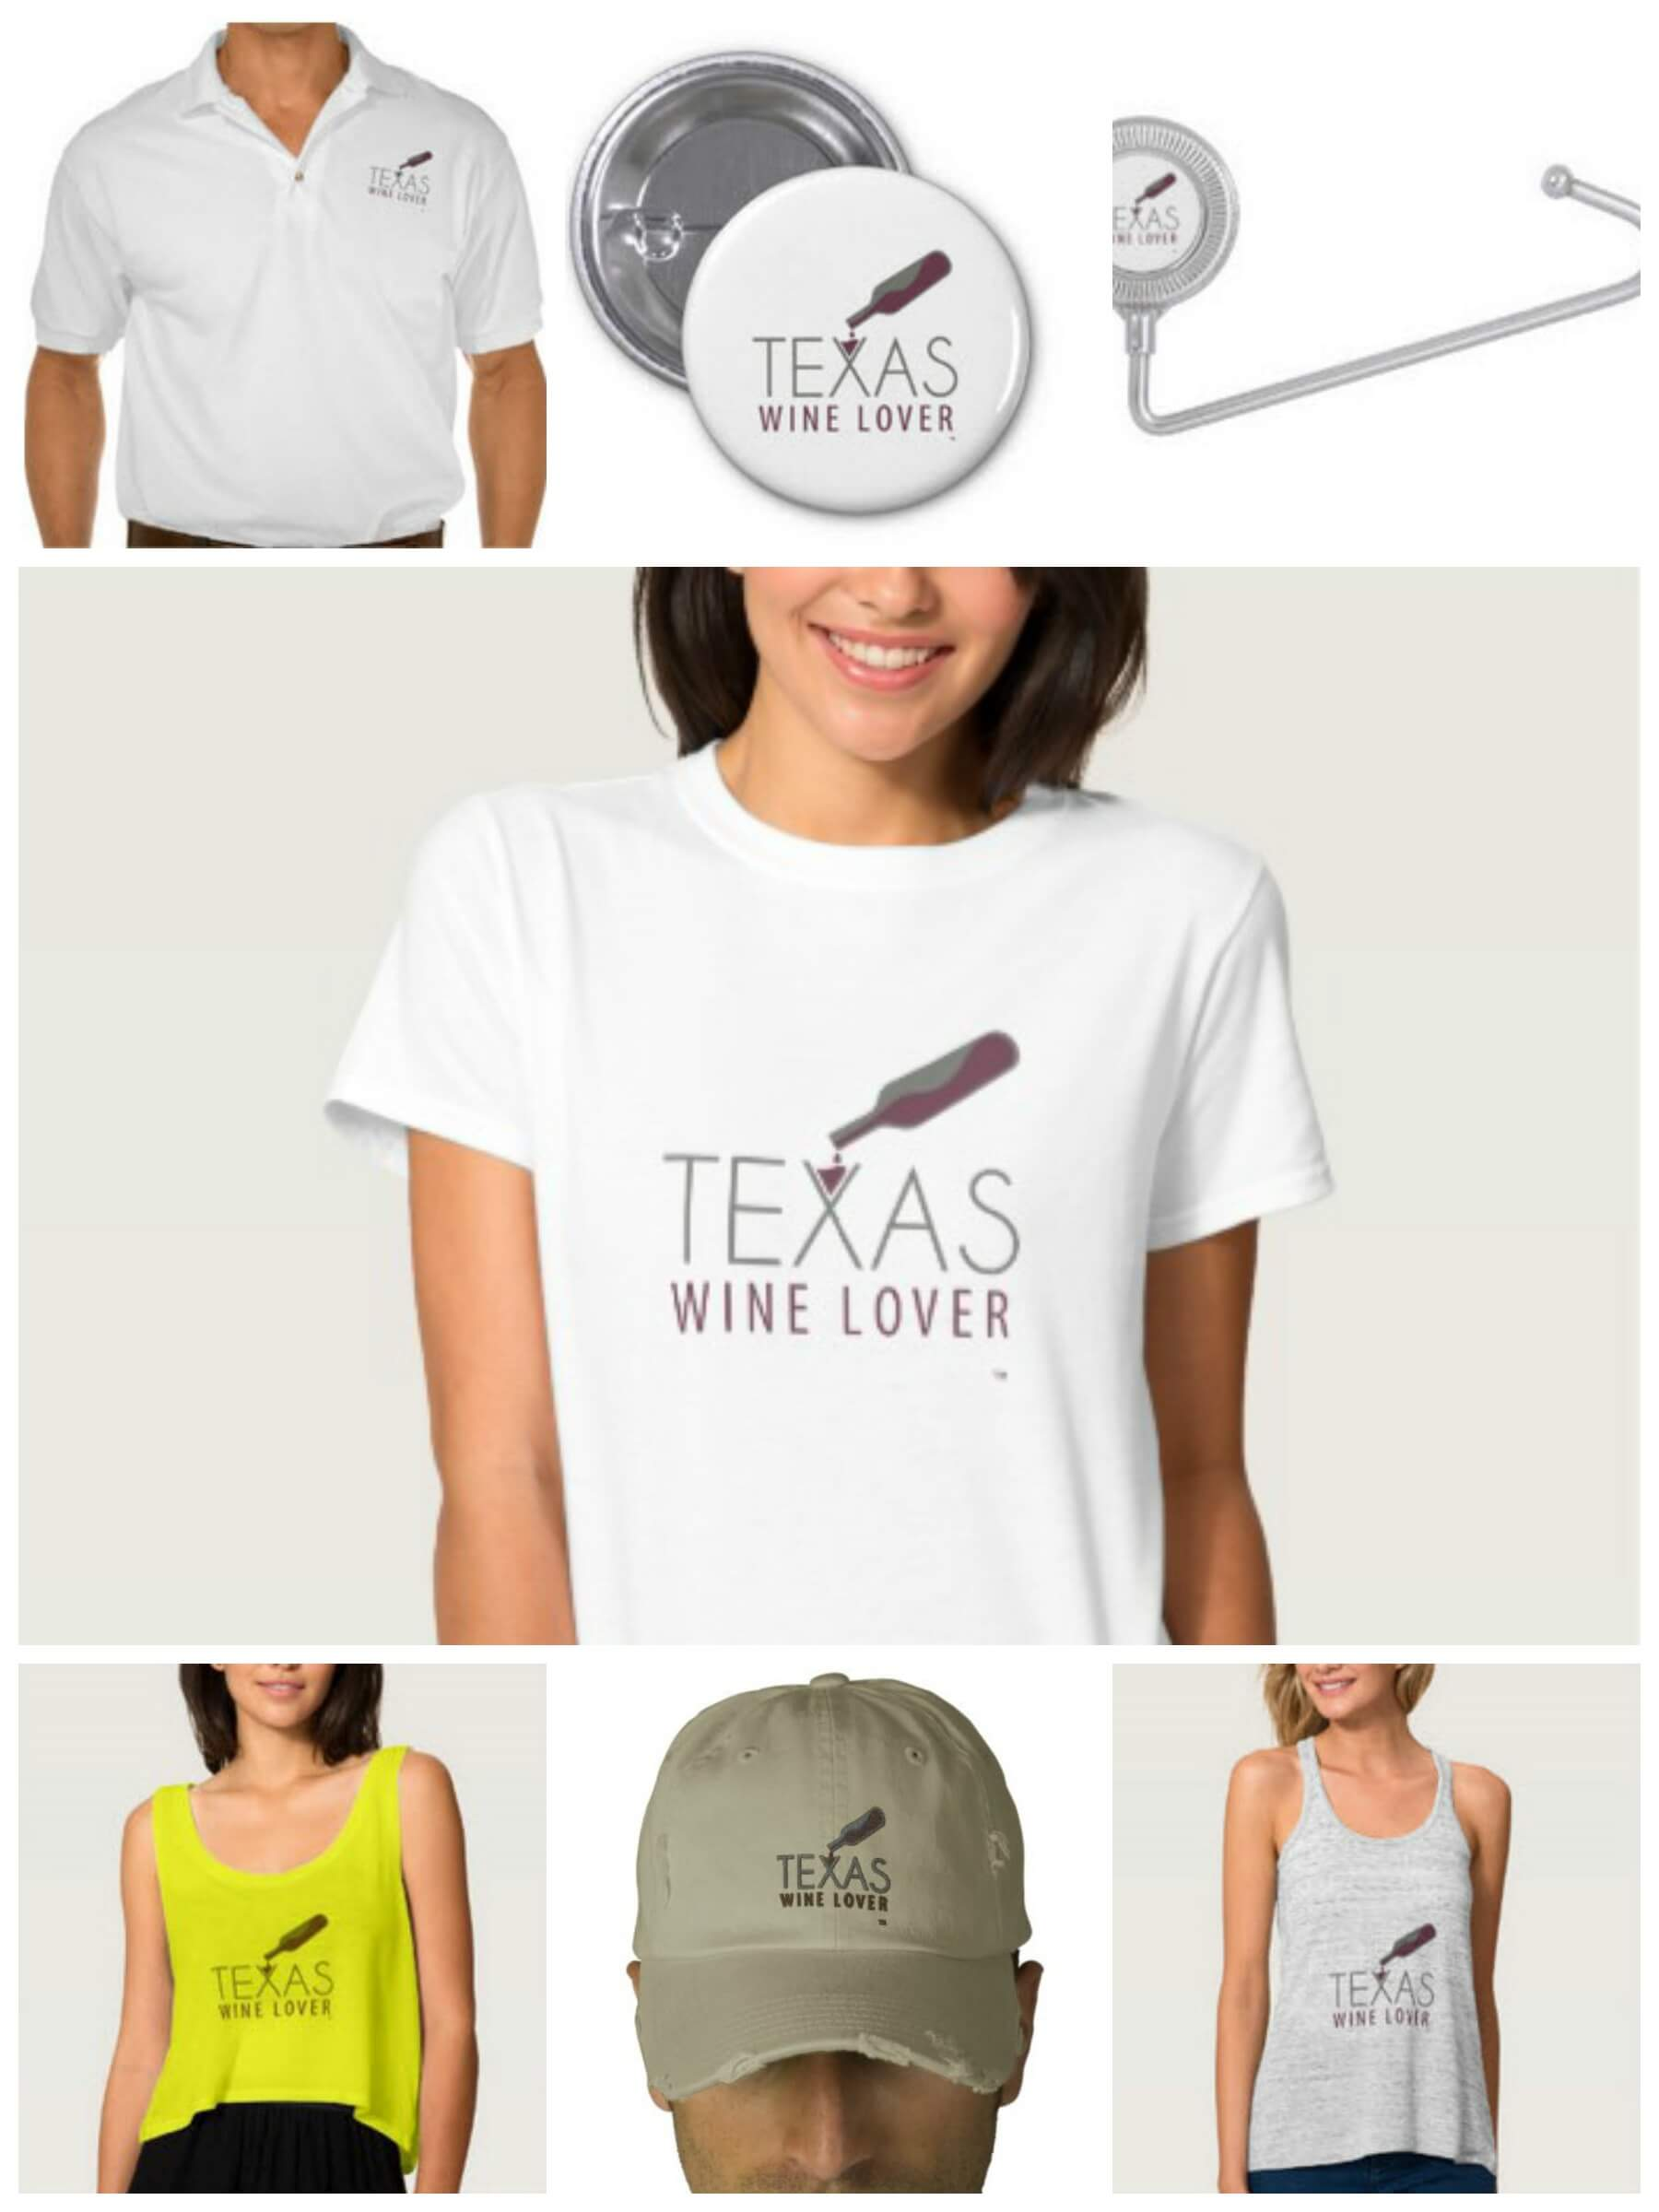 Texas Wine Lover store